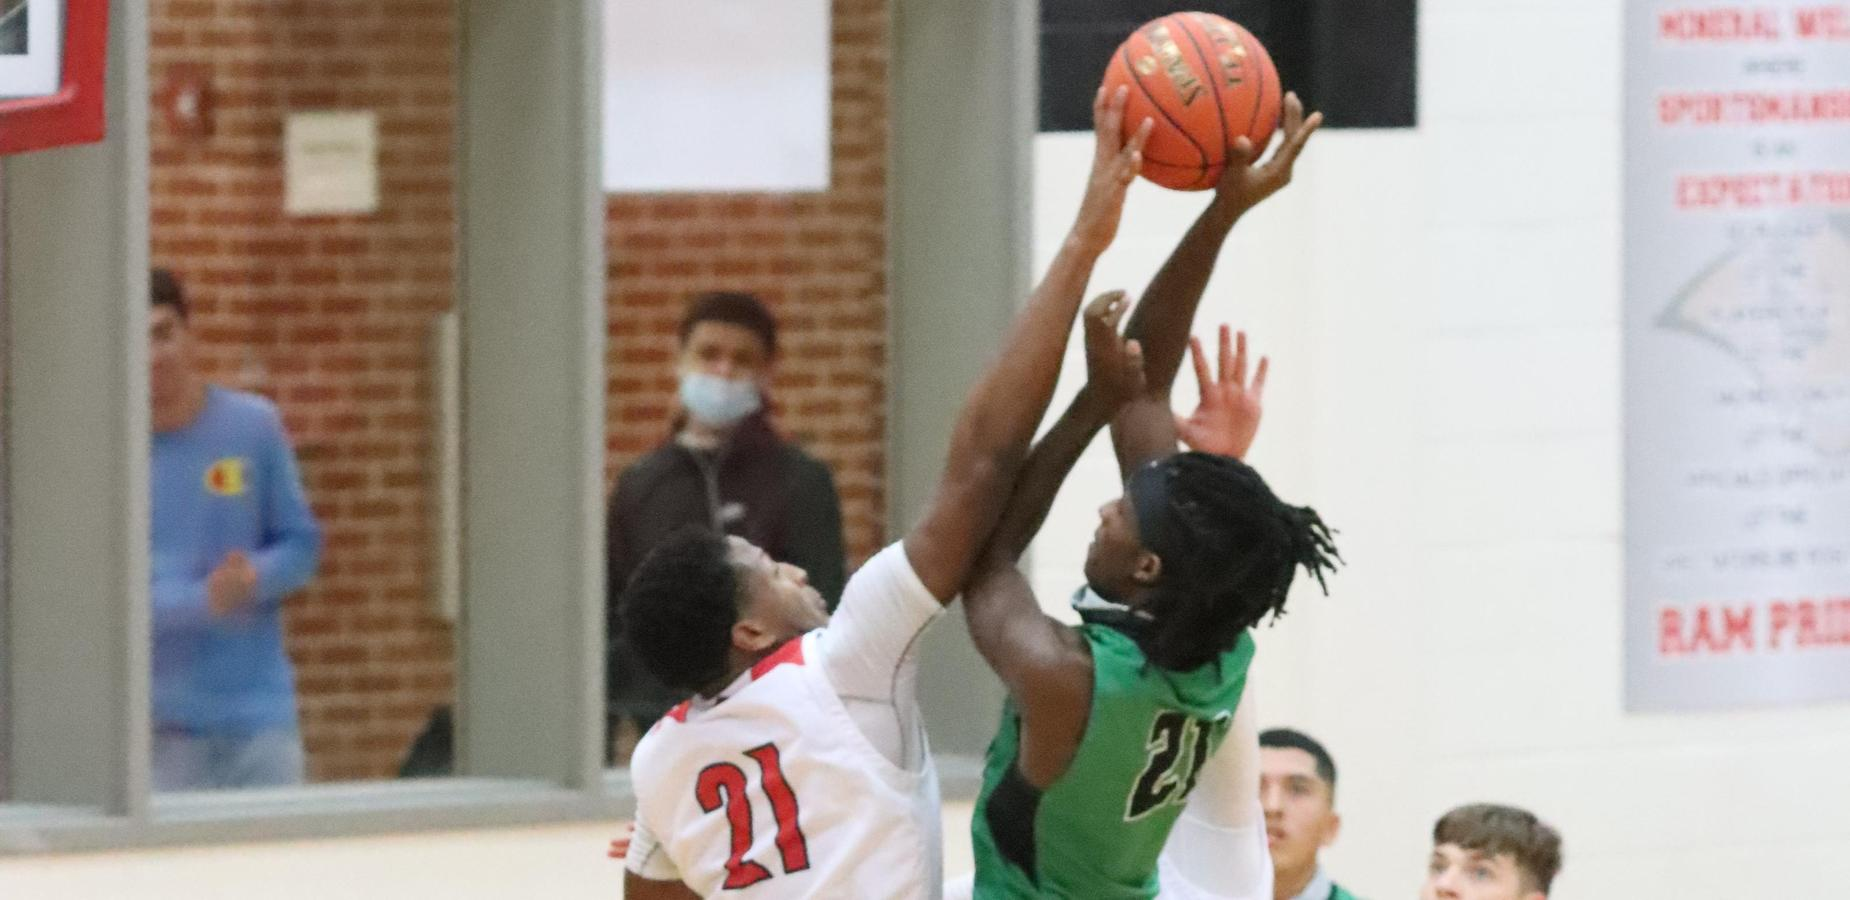 Block by basketball player